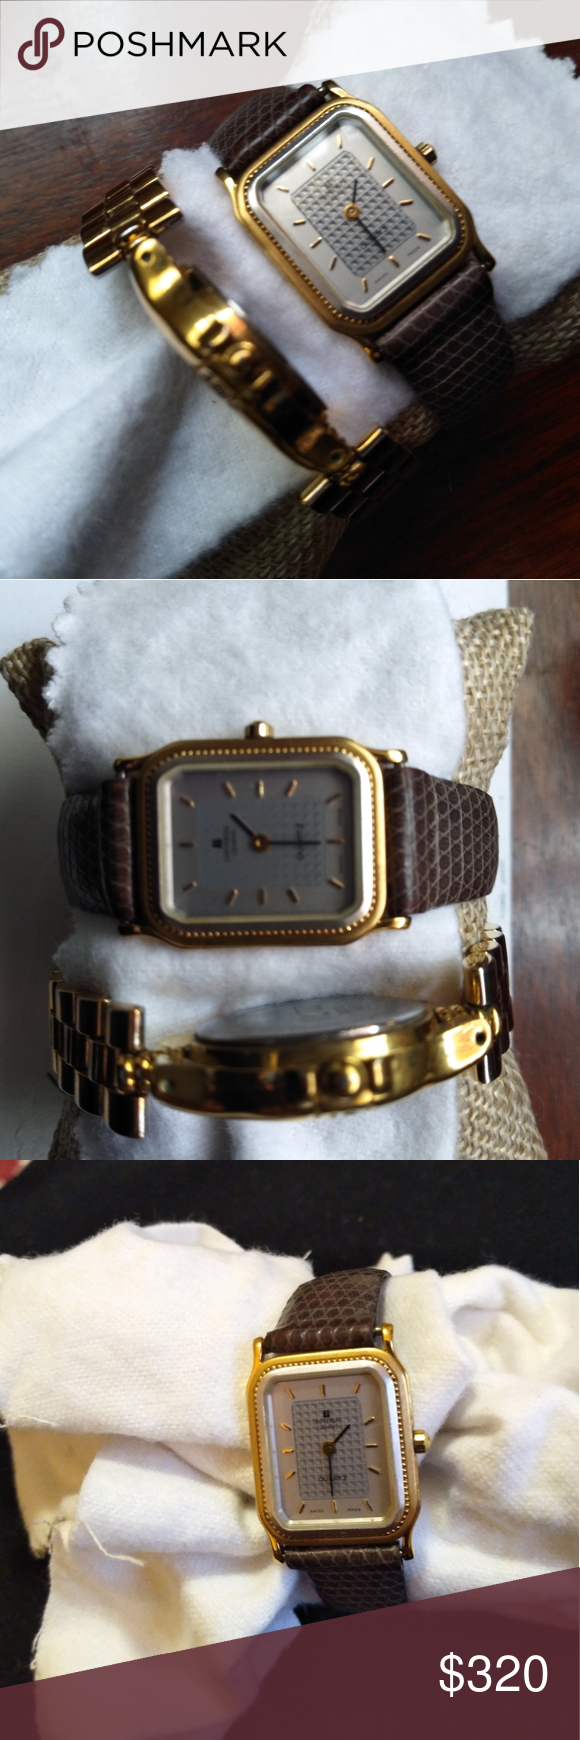 Vintage Geneve Universal Watch Vintage Geneve Universal Watch Solid 18K Gold Electroplate Swiss Made Geneve Accessories Watches #vintagewatches